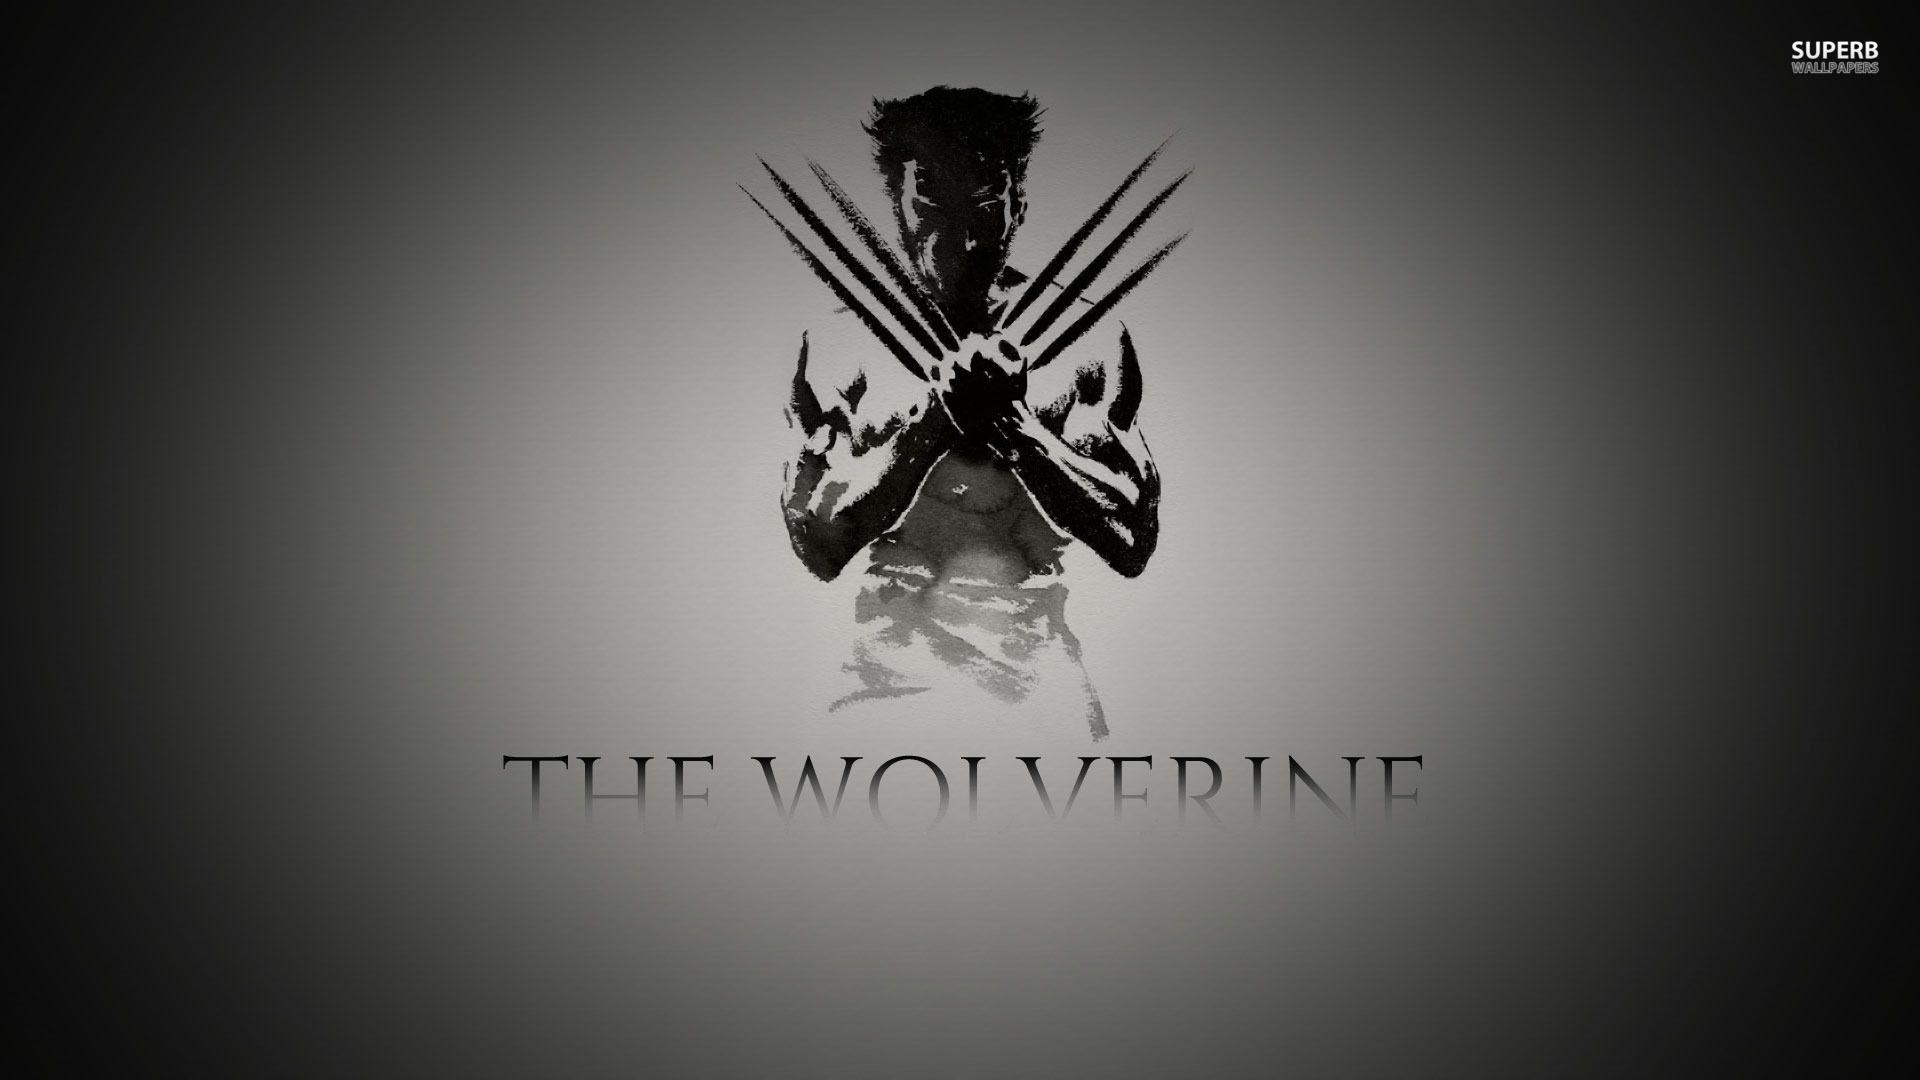 The Wolverine Wallpapers - Full HD wallpaper search